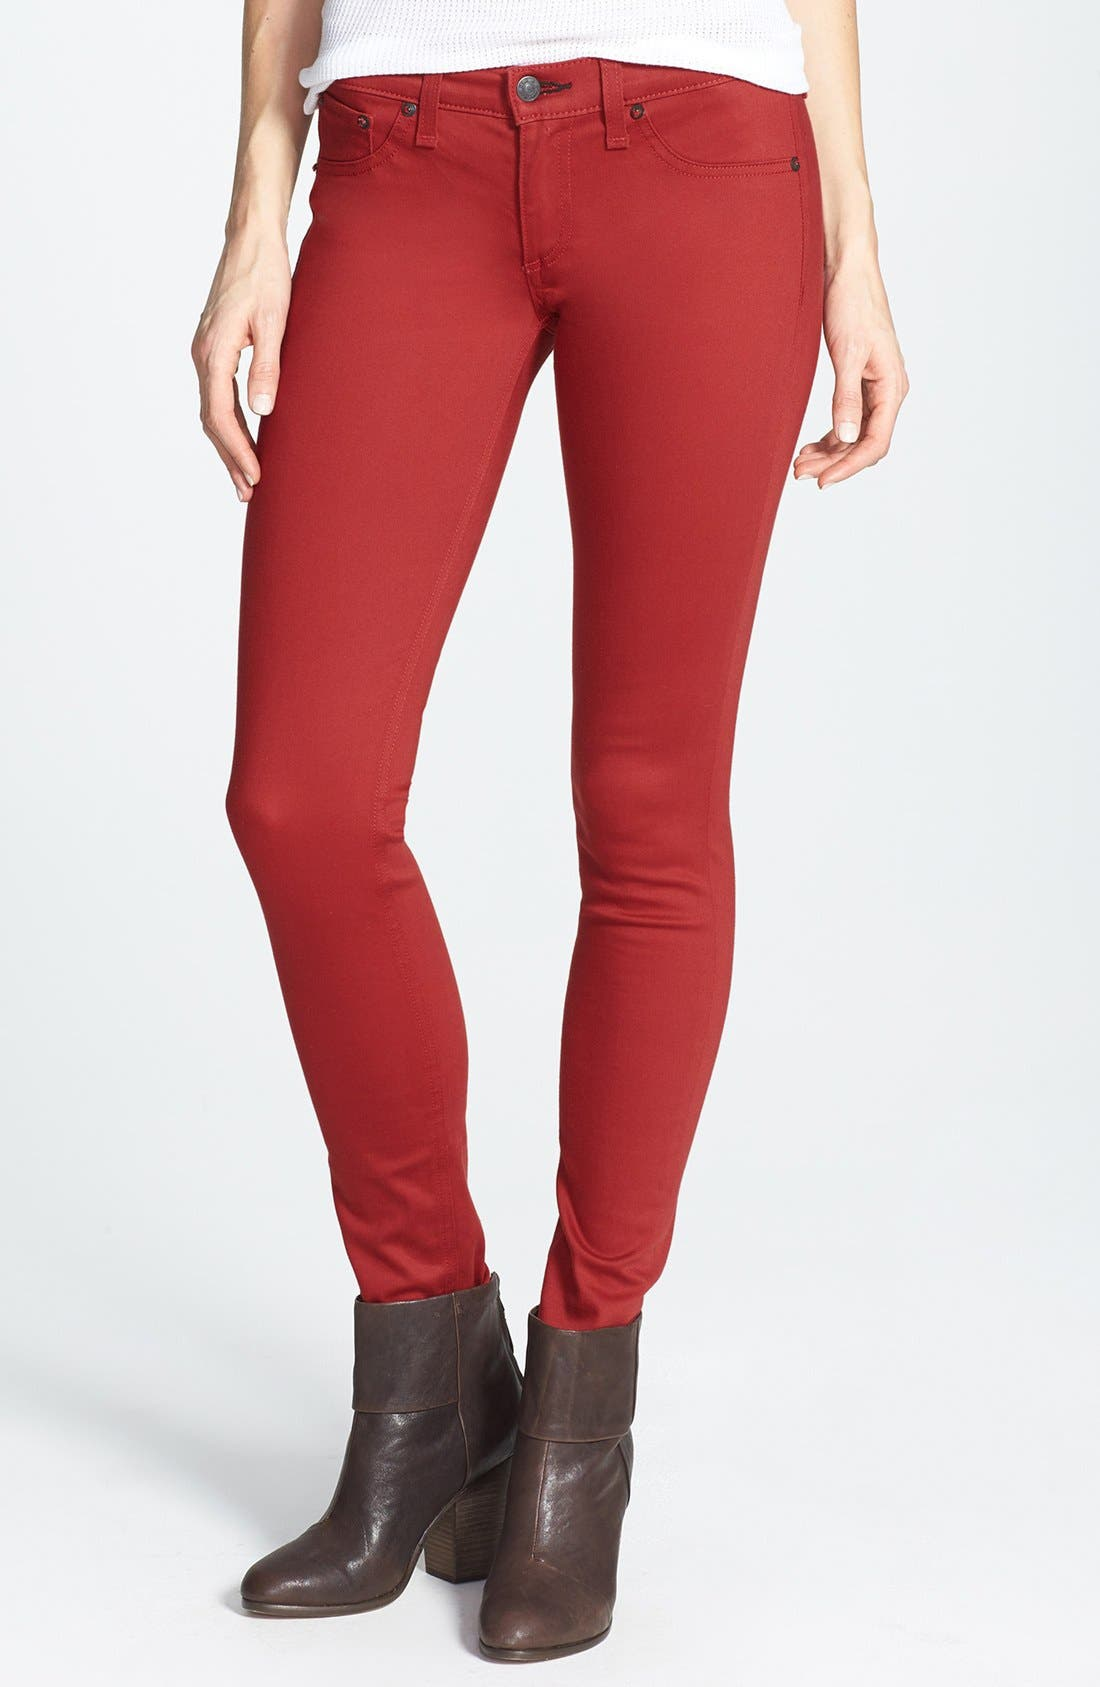 Main Image - rag & bone/JEAN 'The Legging' Sateen Skinny Jeans (Red Sateen)